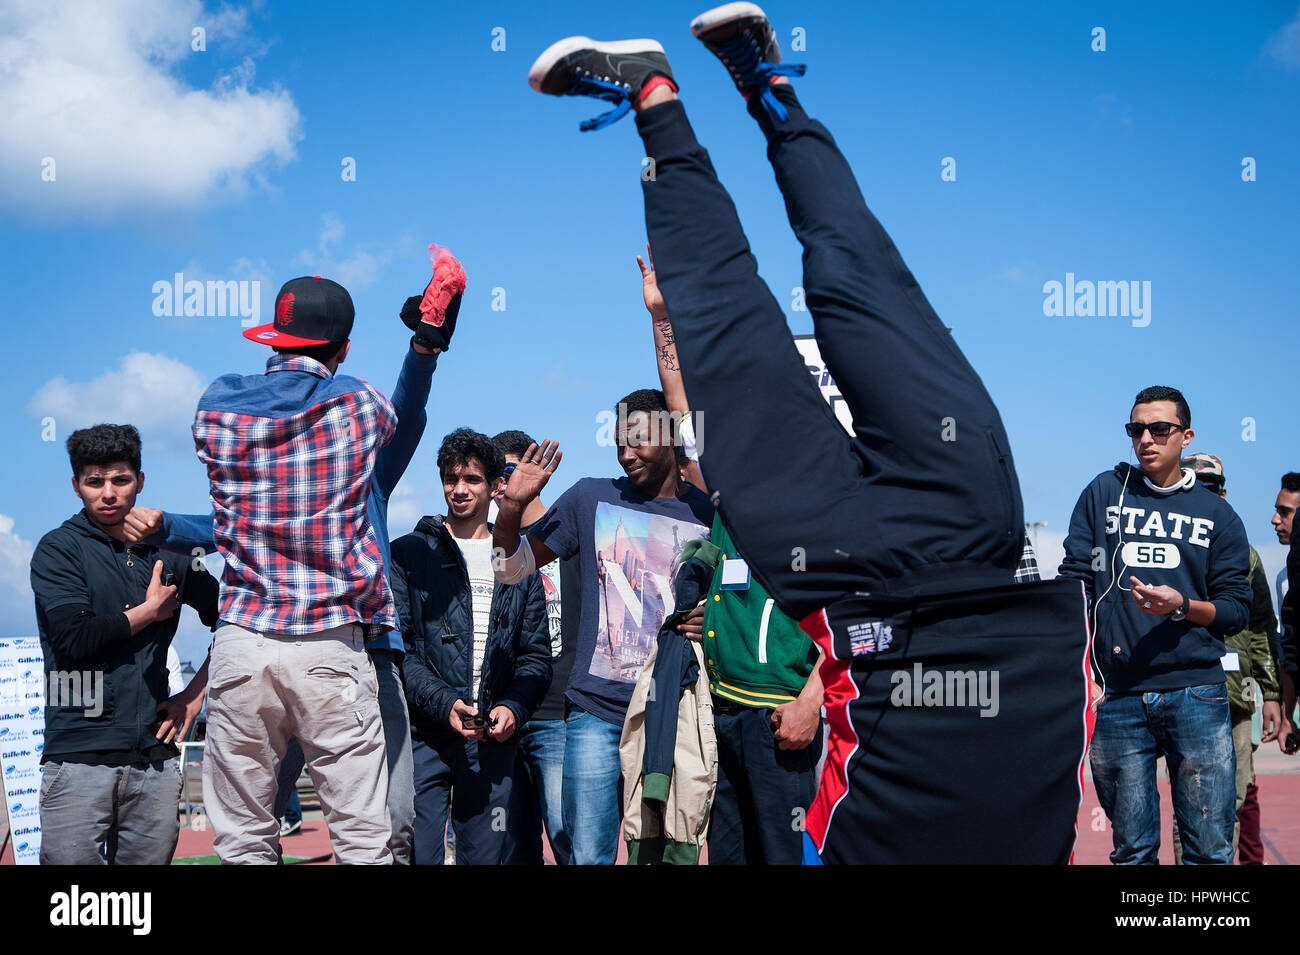 Libya, Tripoli: Young guys breakdance at an open air dance and parkour festival. Stock Photo